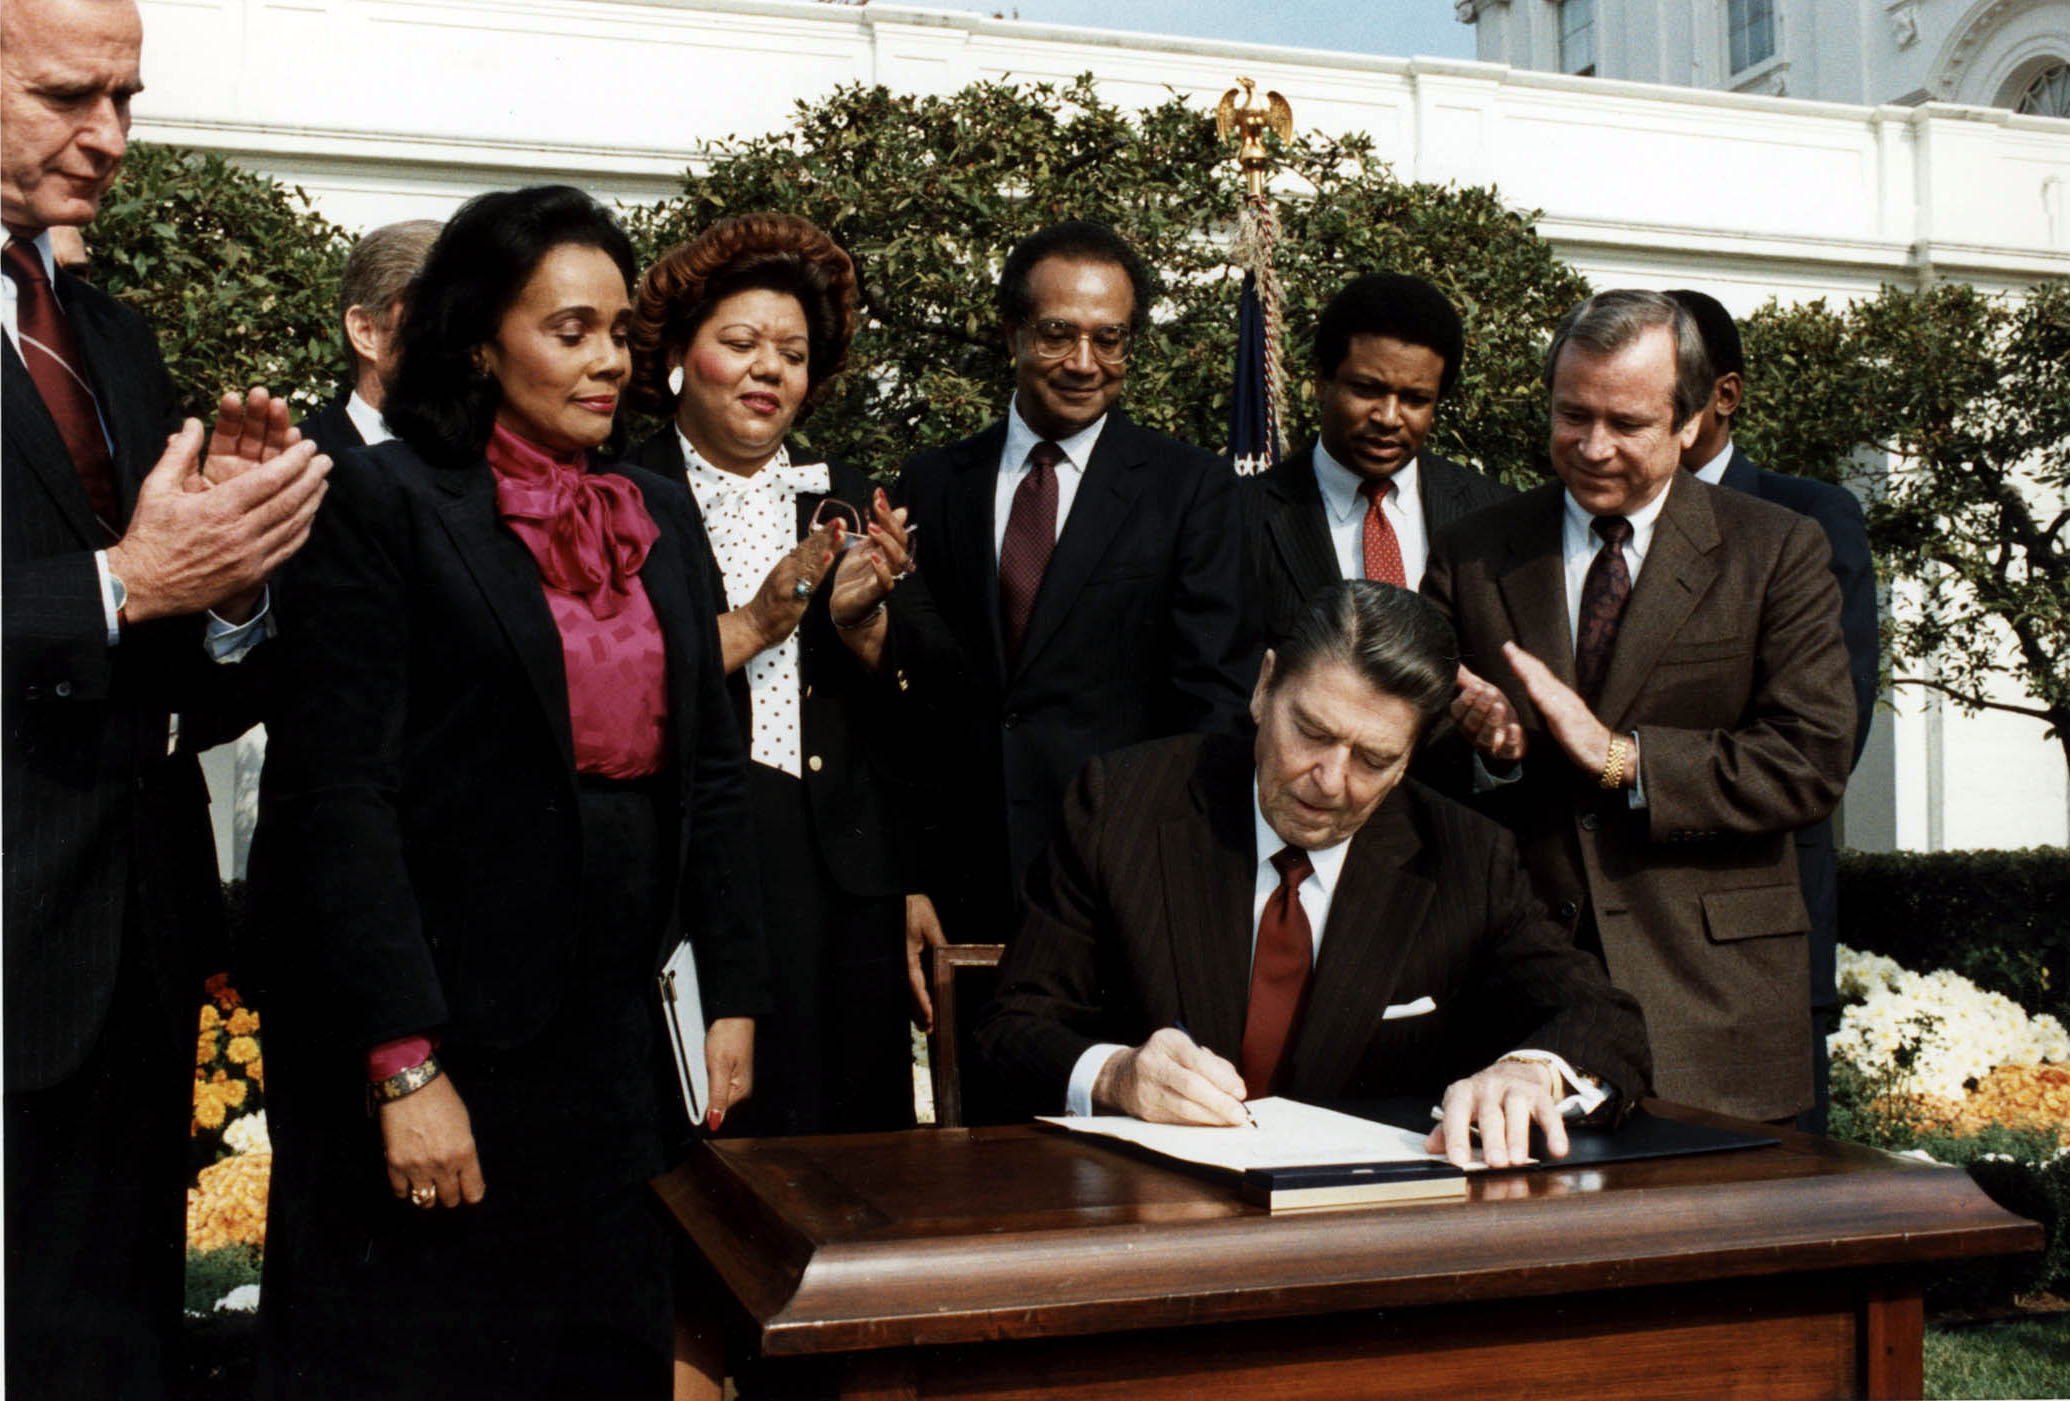 https://upload.wikimedia.org/wikipedia/commons/4/4c/Reagan_signs_Martin_Luther_King_bill.jpg